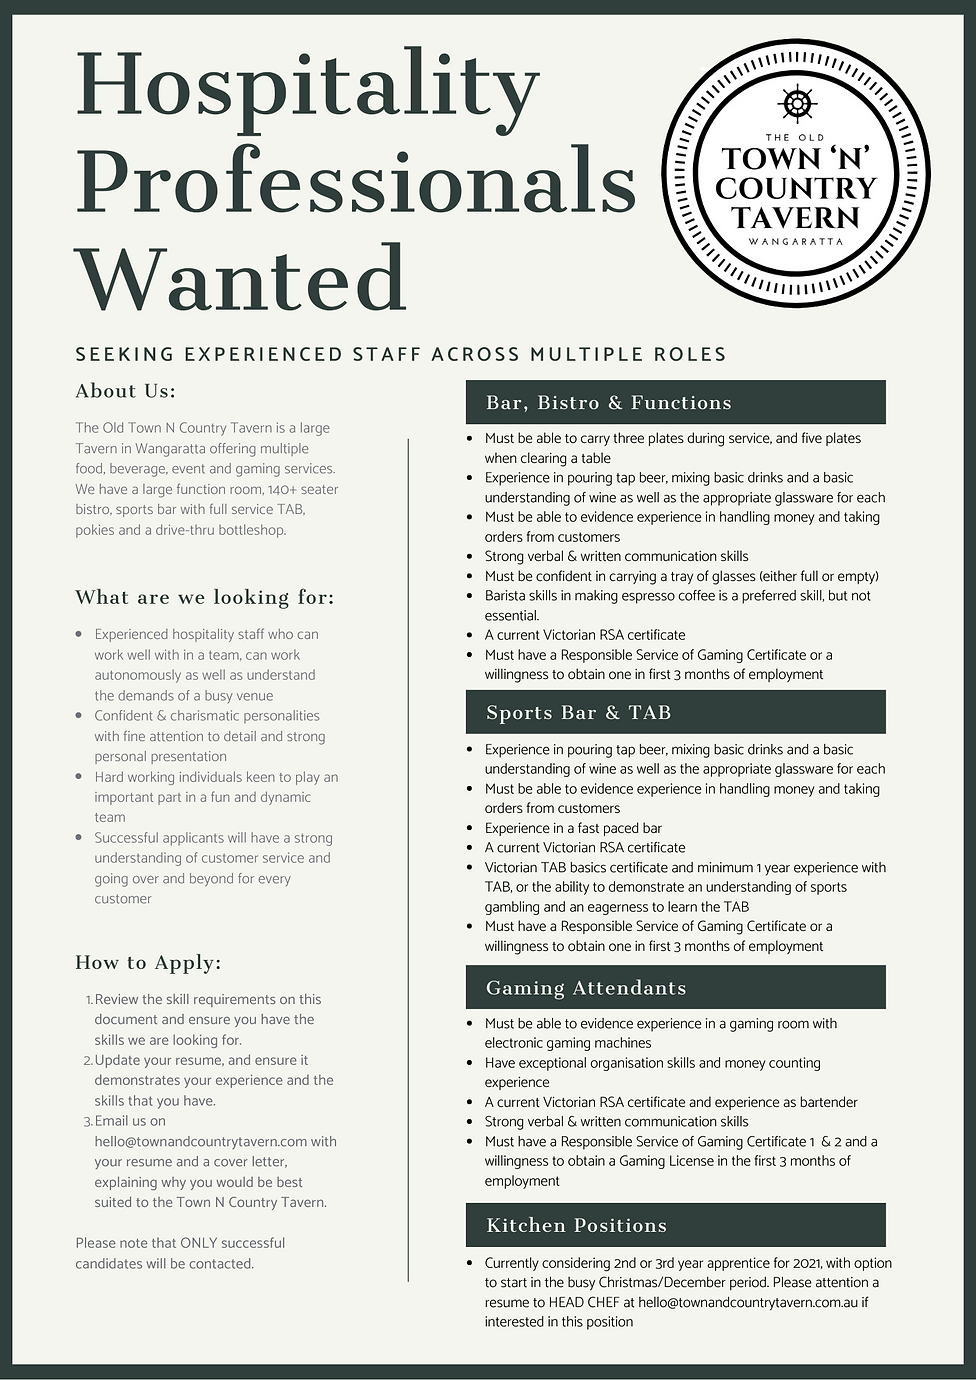 Hospitality Professionals Wanted.png